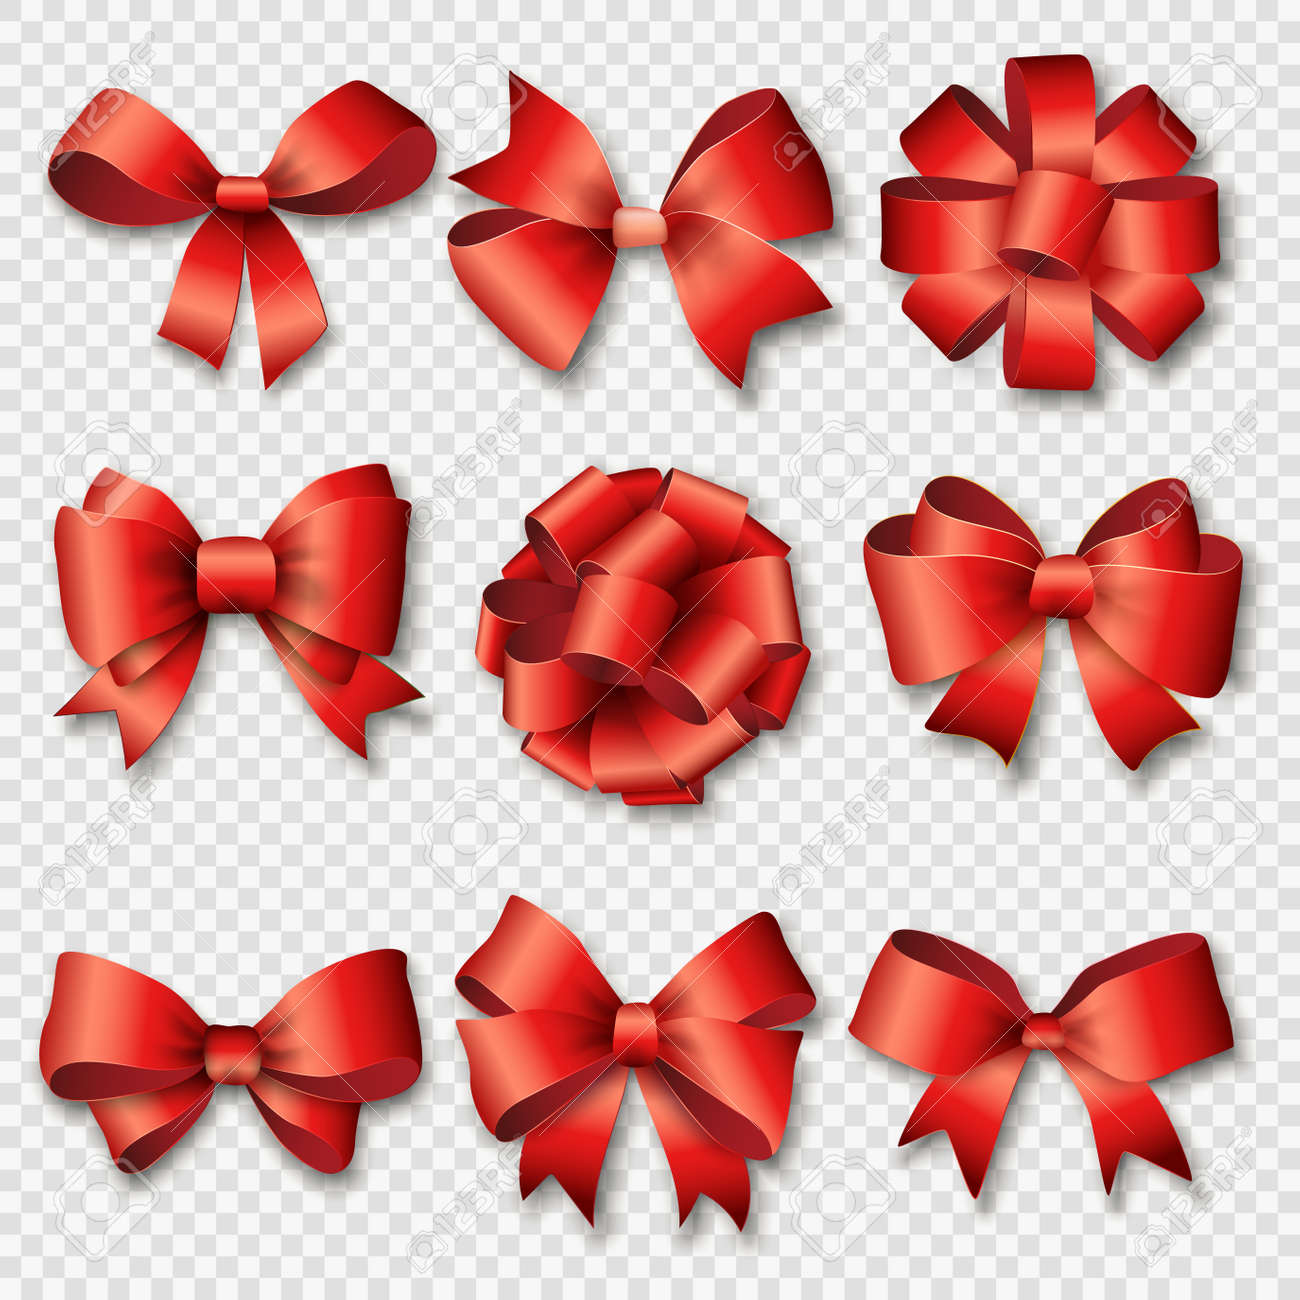 313 047 bow stock vector illustration and royalty free bow clipart rh 123rf com bow clipart svg bow clipart png